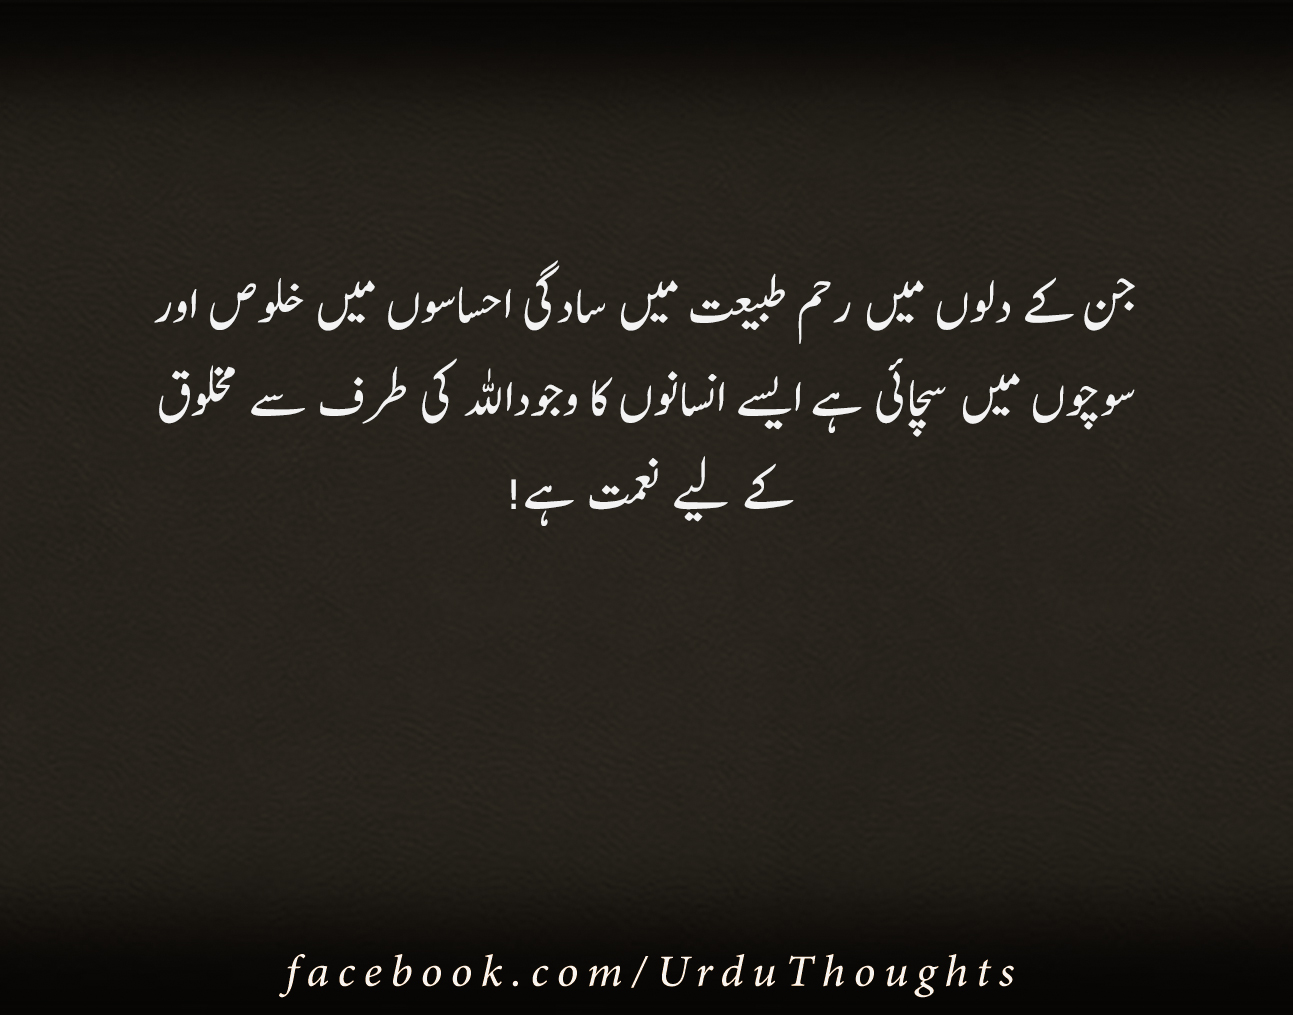 short urdu quotes with high quality pictures urdu thoughts